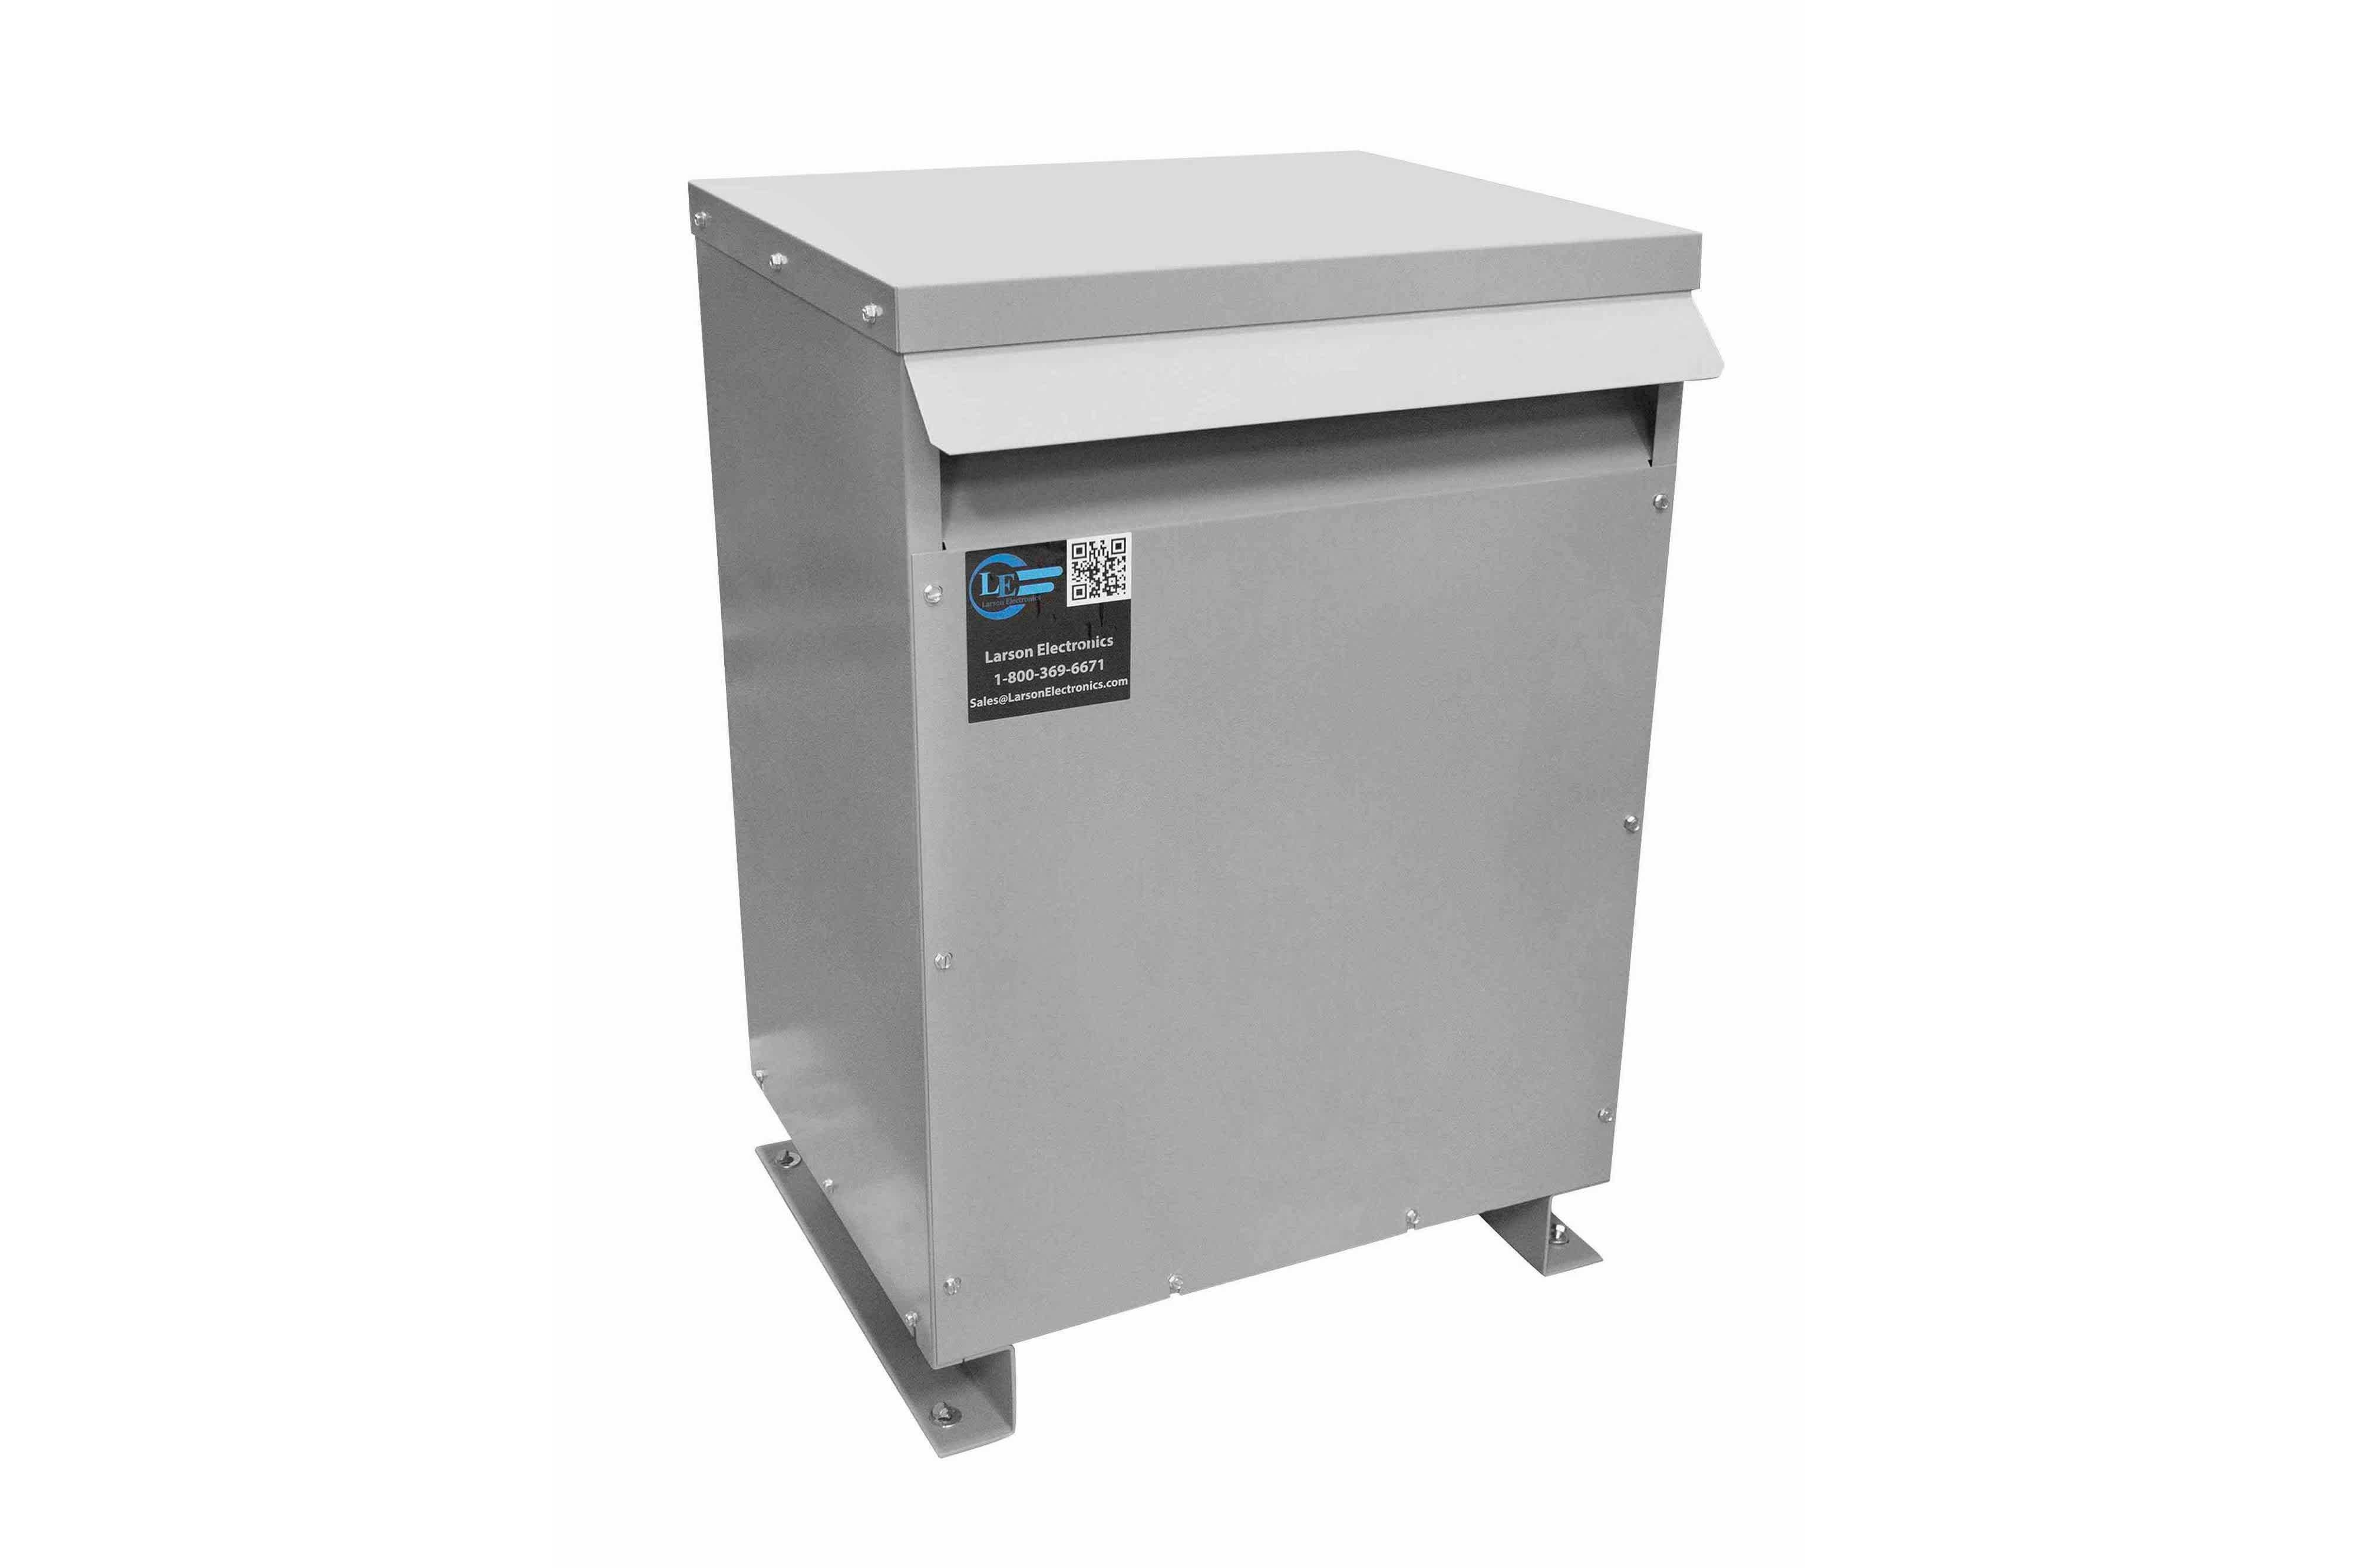 250 kVA 3PH DOE Transformer, 460V Delta Primary, 380Y/220 Wye-N Secondary, N3R, Ventilated, 60 Hz